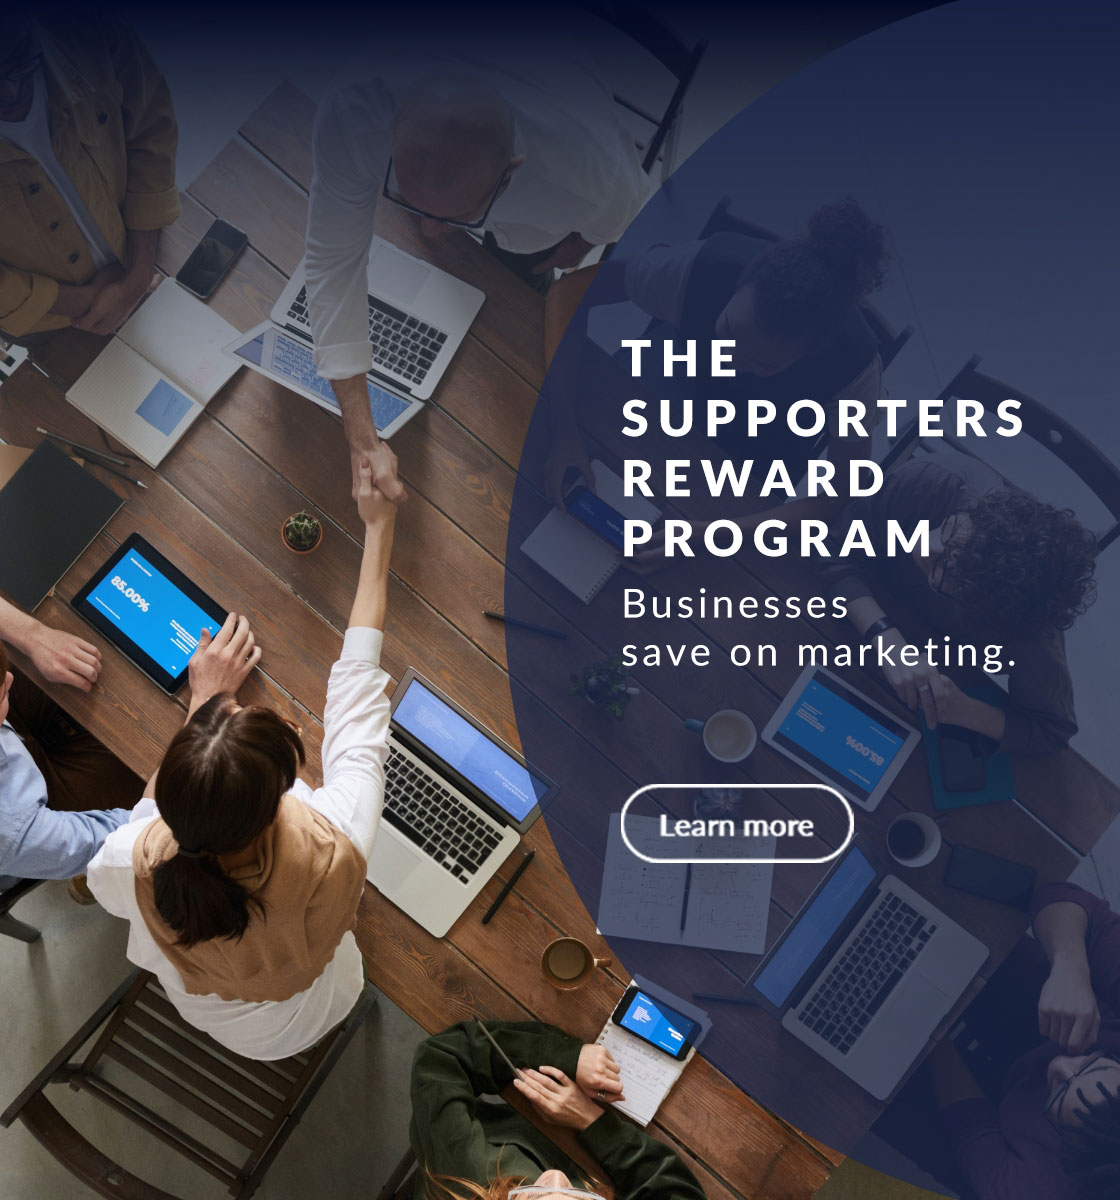 Rewards4Earth the supporter's reward program that helps businesses save on marketing